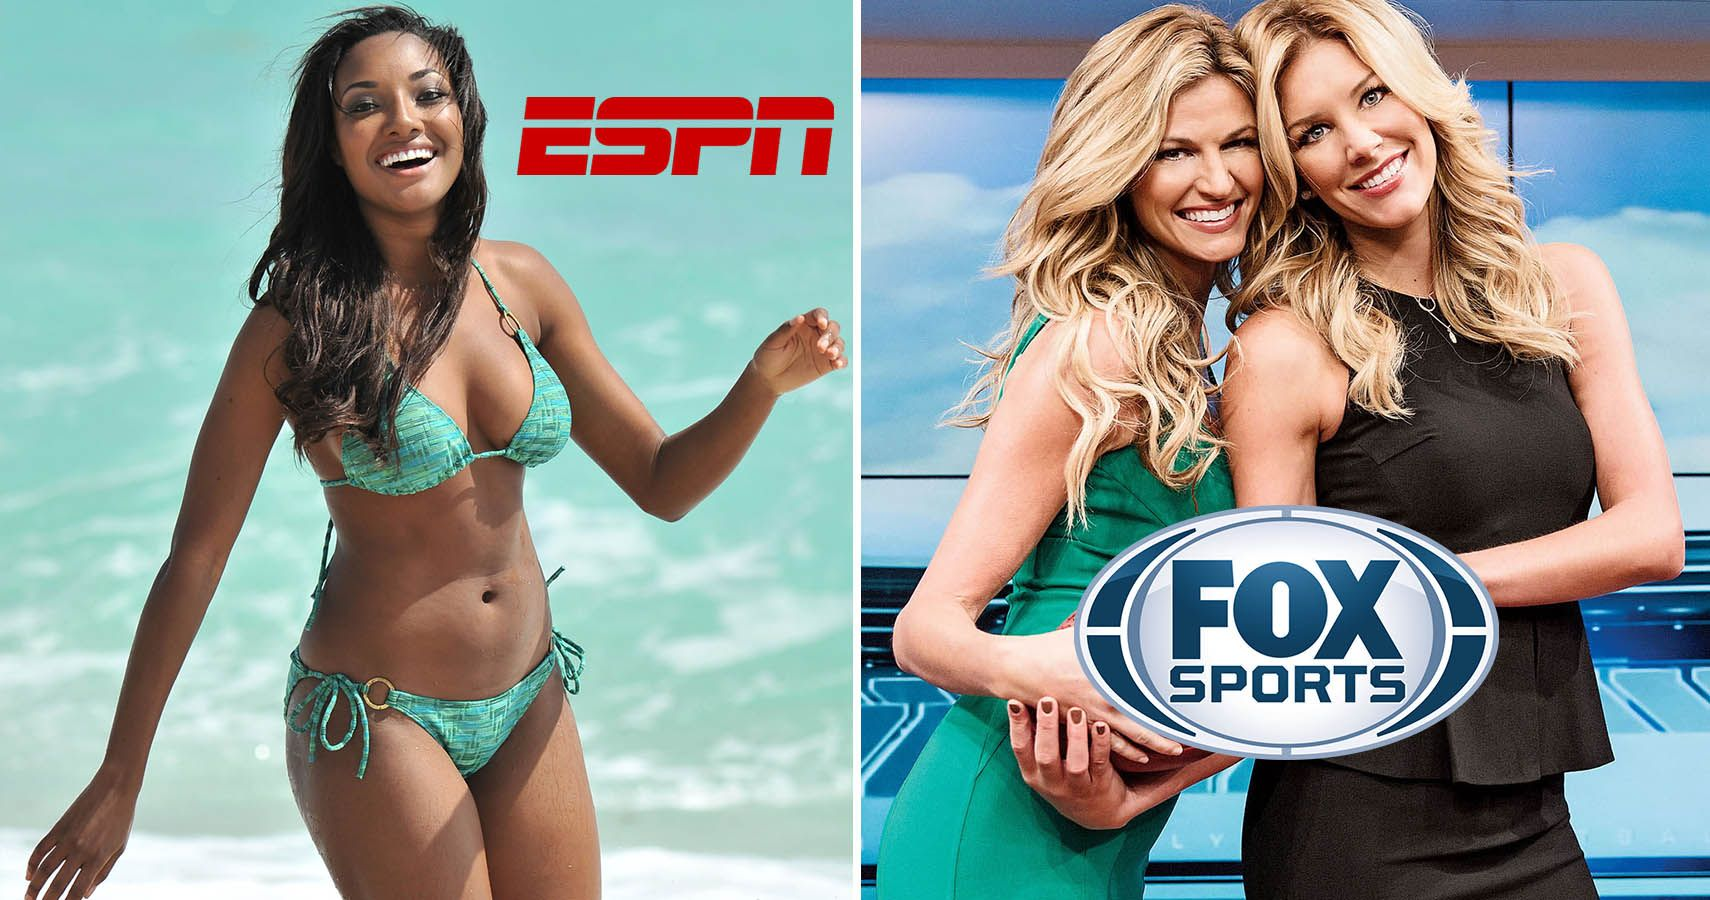 The Hottest Women Of Espn And Fox Sports Thesportster